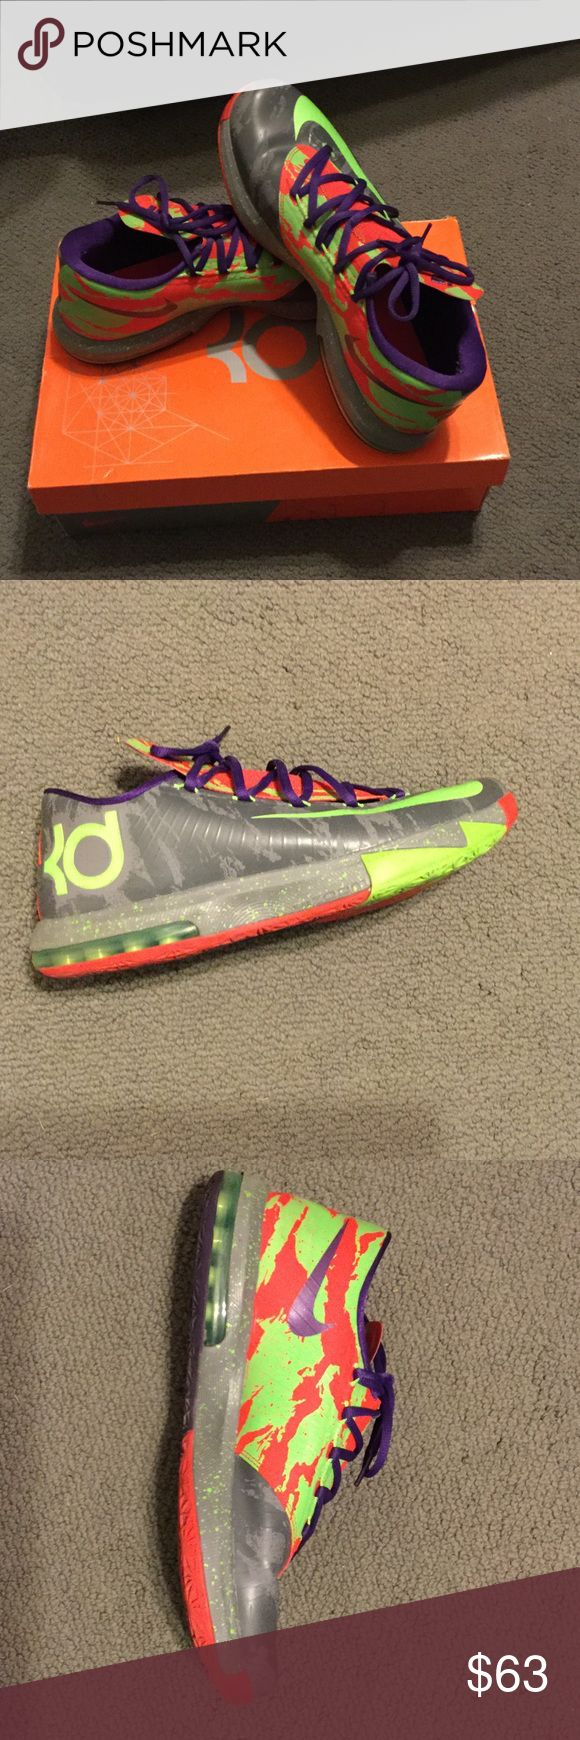 KD VI Used Nike KD VI multi color shoes. Nike Shoes Sneakers